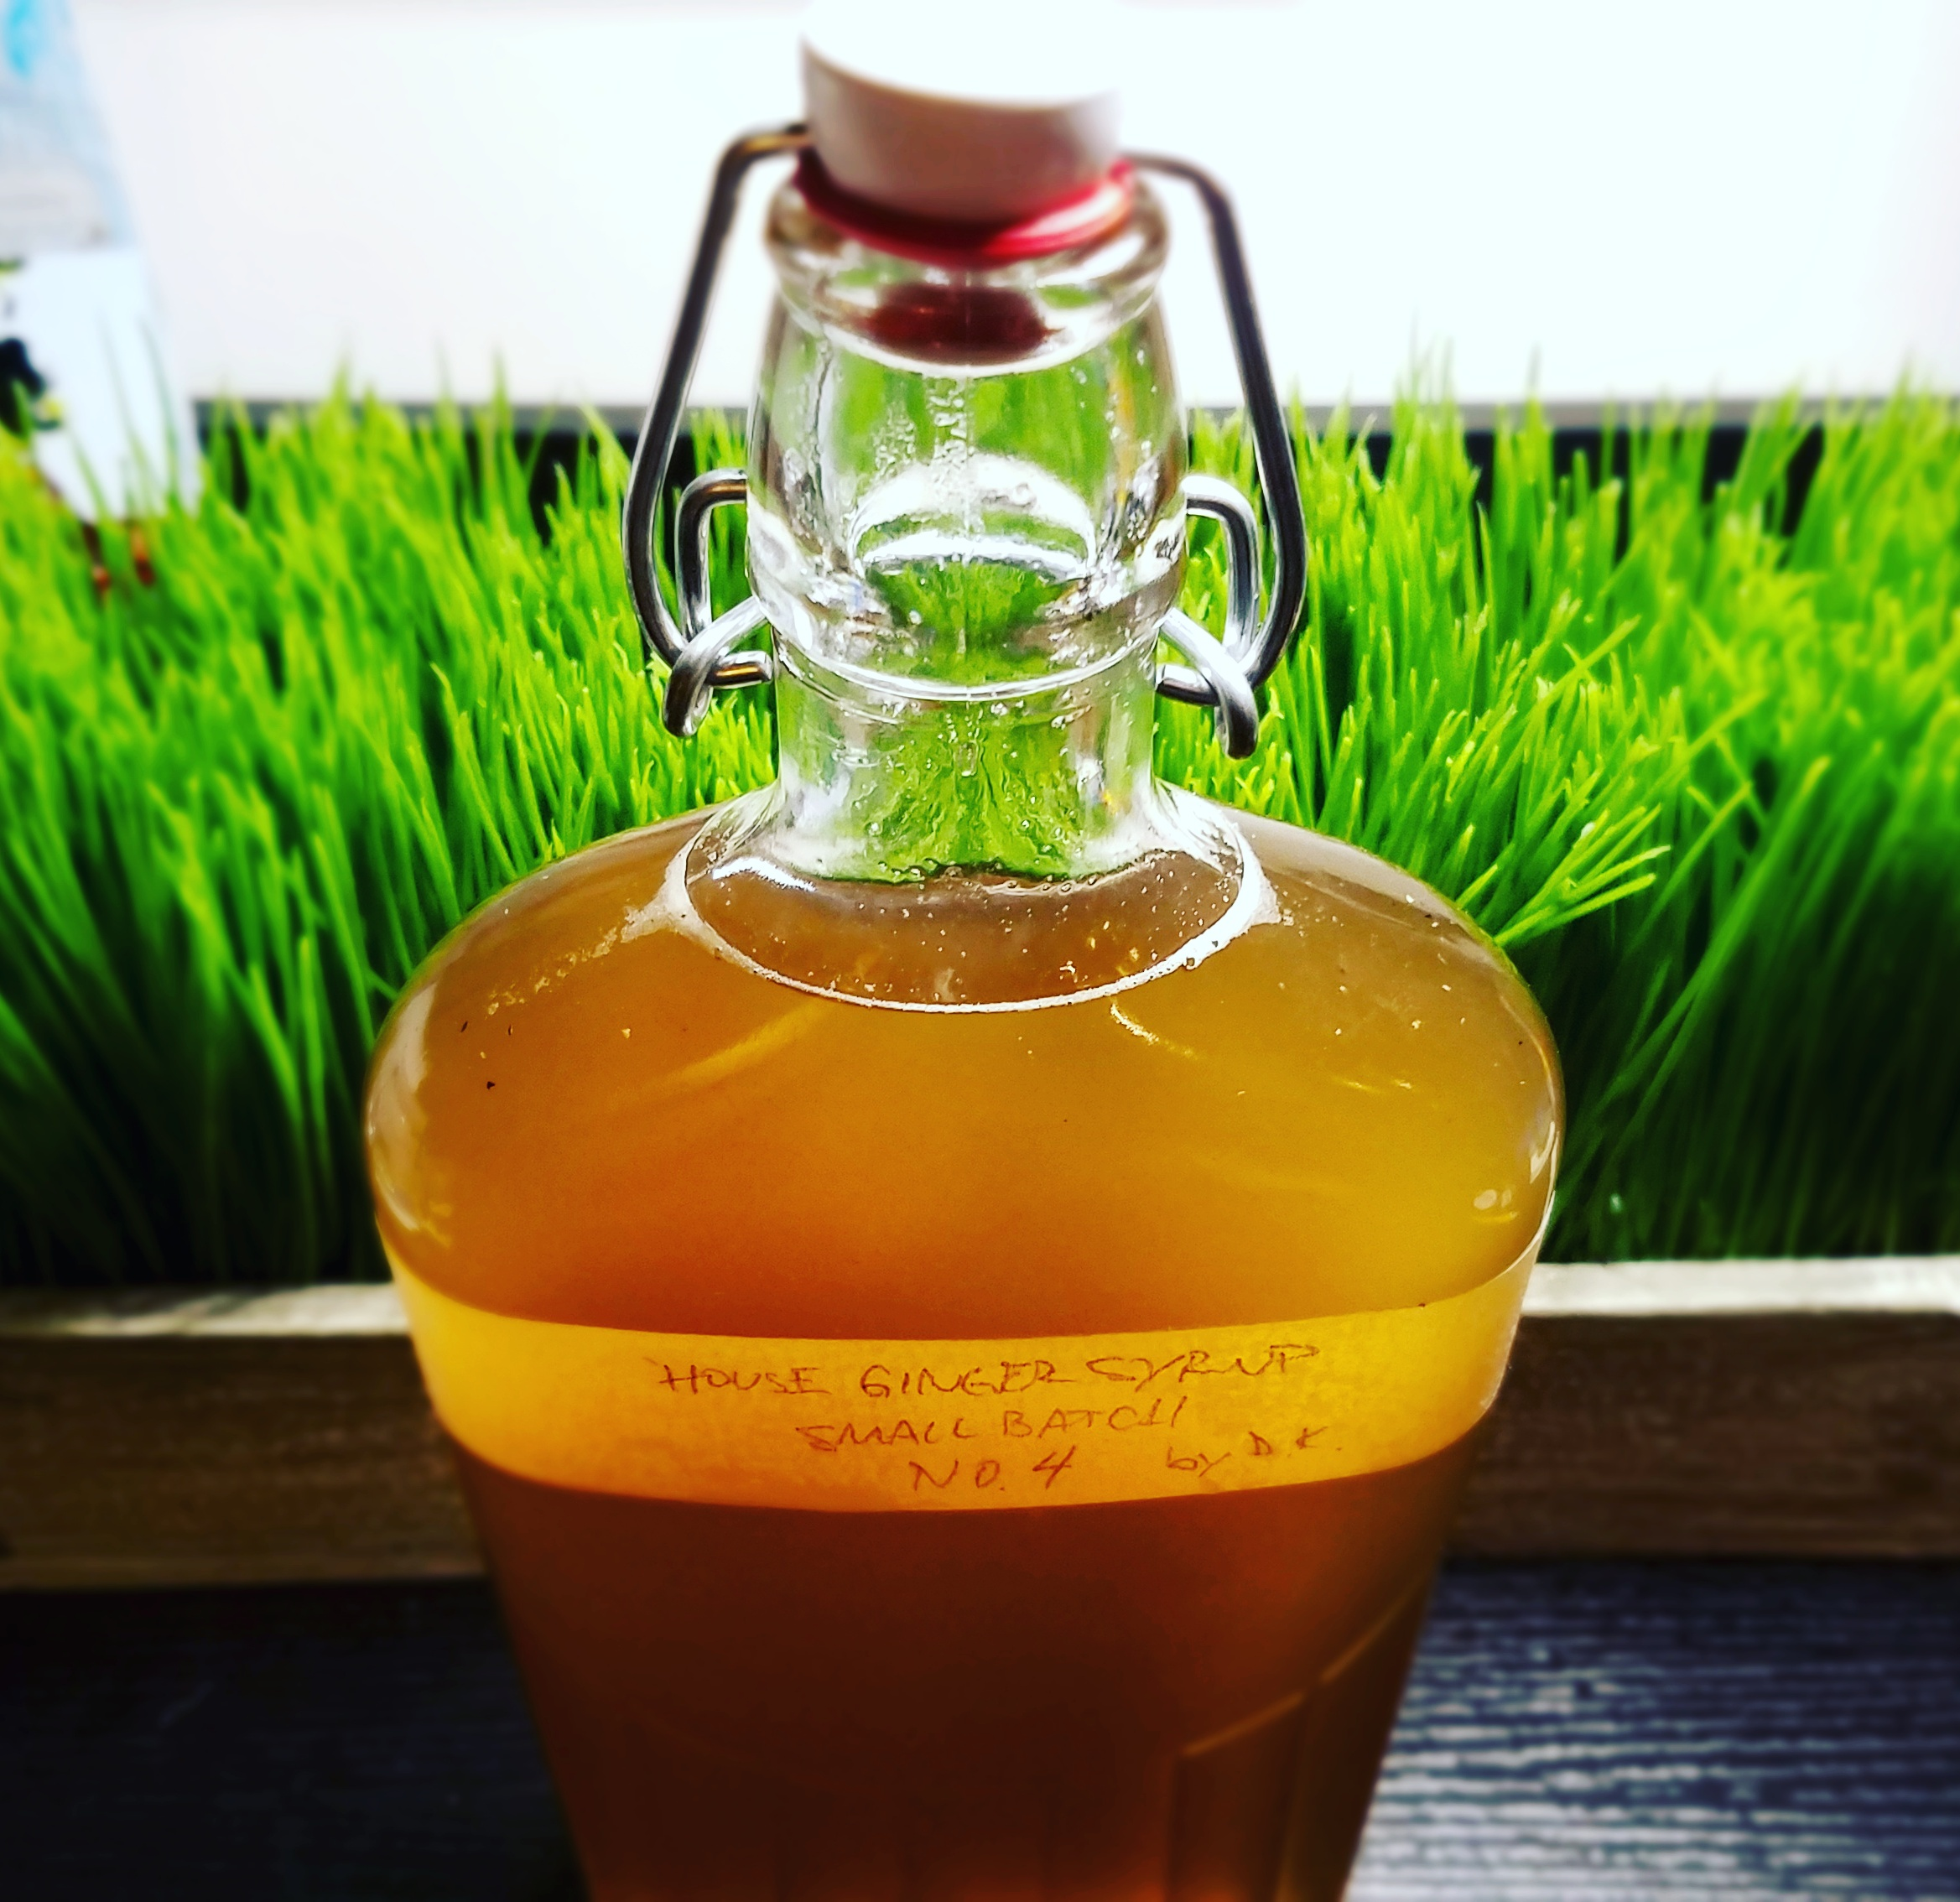 Craft House Ginger Syrup